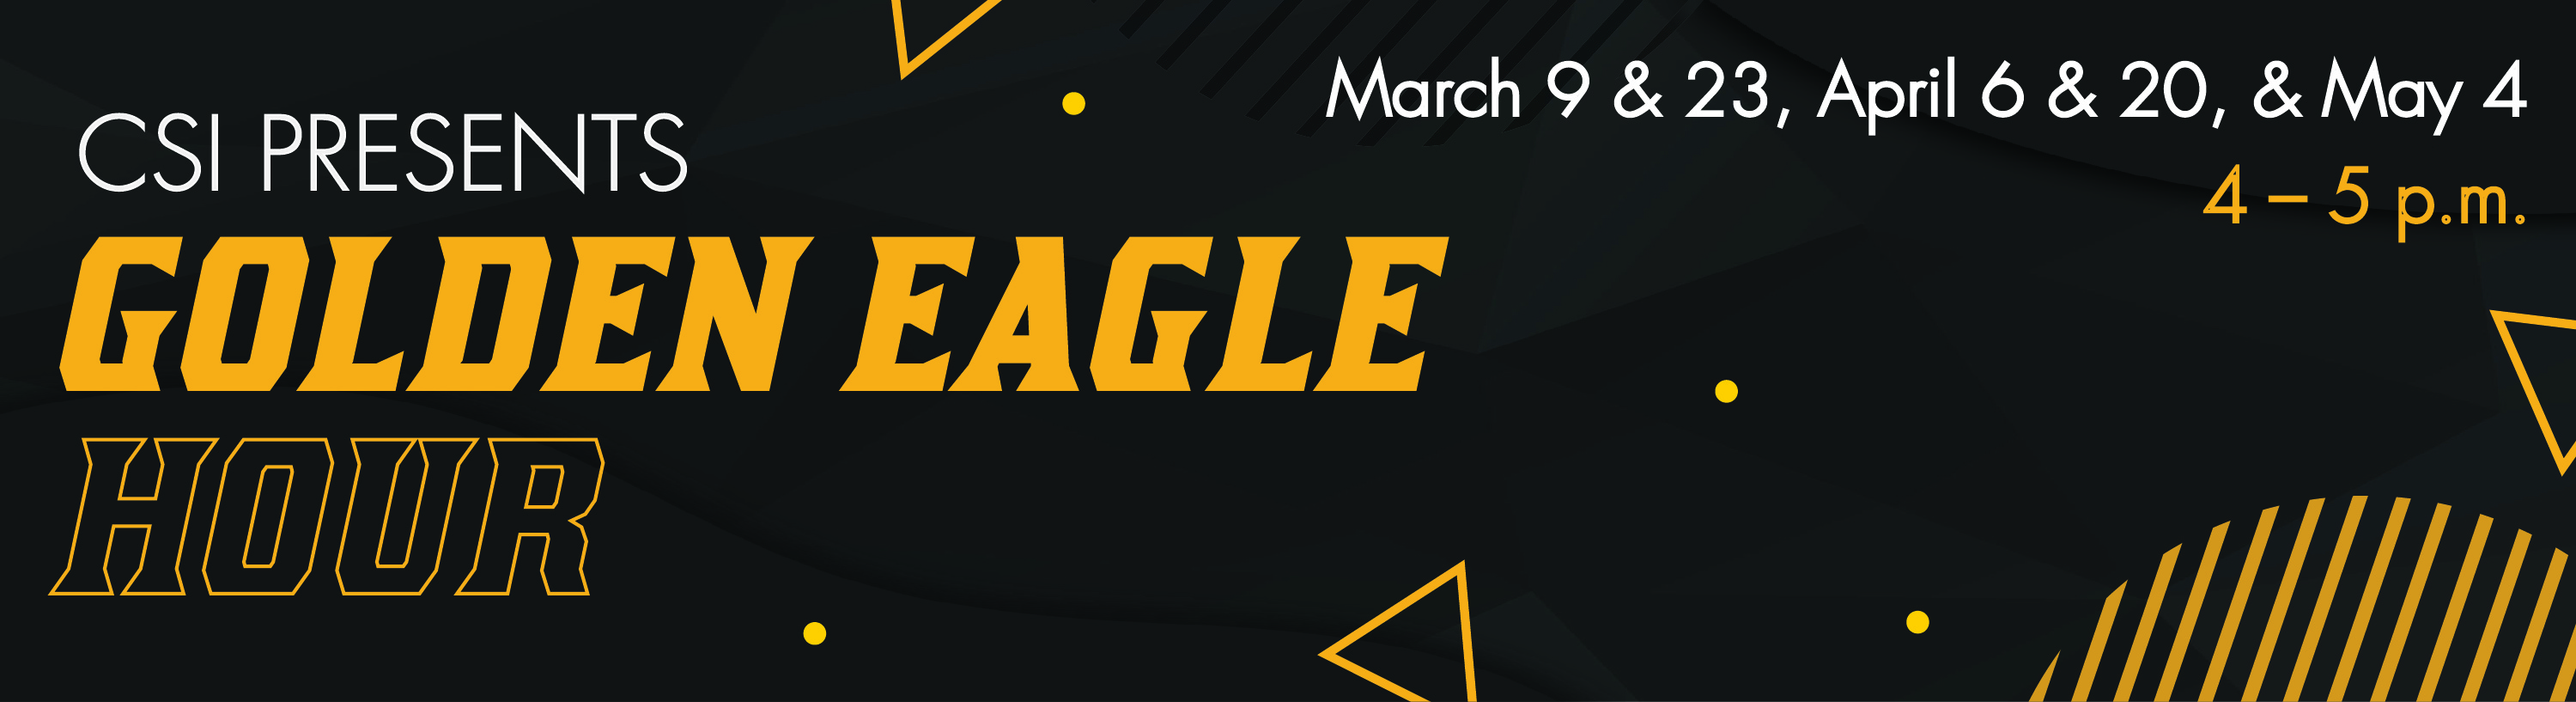 CSI Presents Golden Eagle Hour, March 9th and 23rd, April 6 and 20th, and May 4th at 4PM to 5PM. Click here for the zoom link